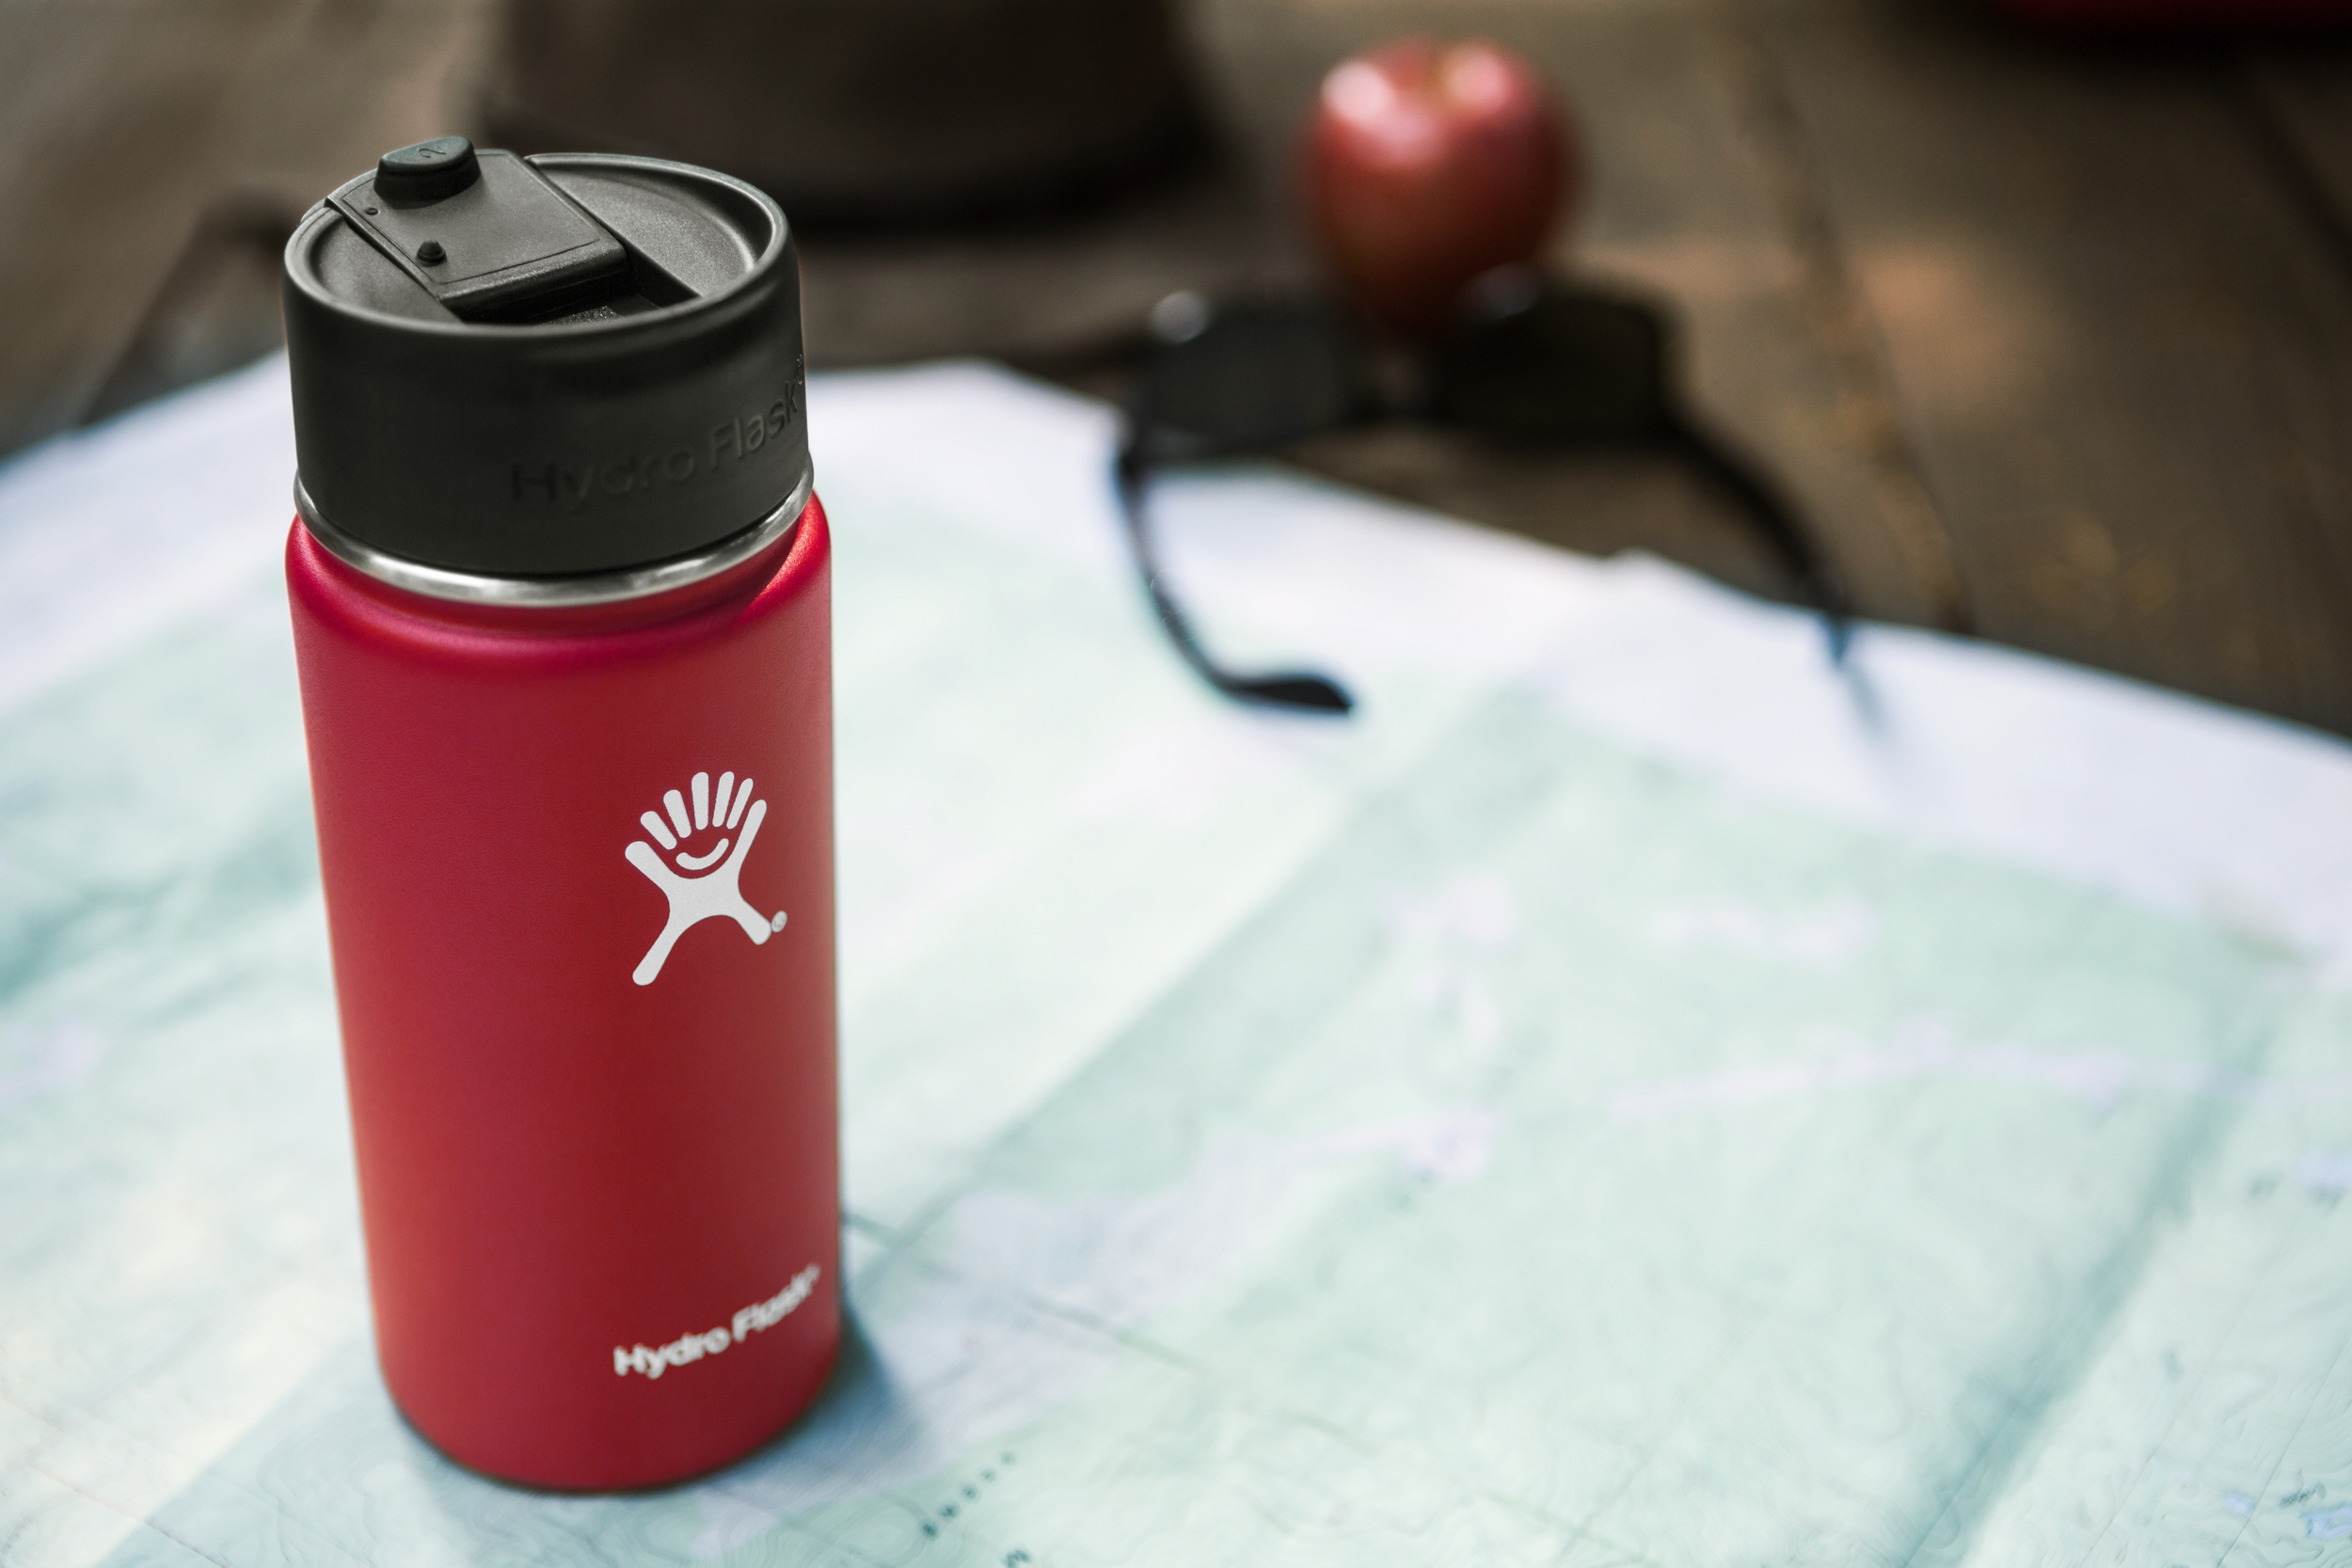 16 oz. Wide Mouth Insulated Coffee Mug | Hydro Flask